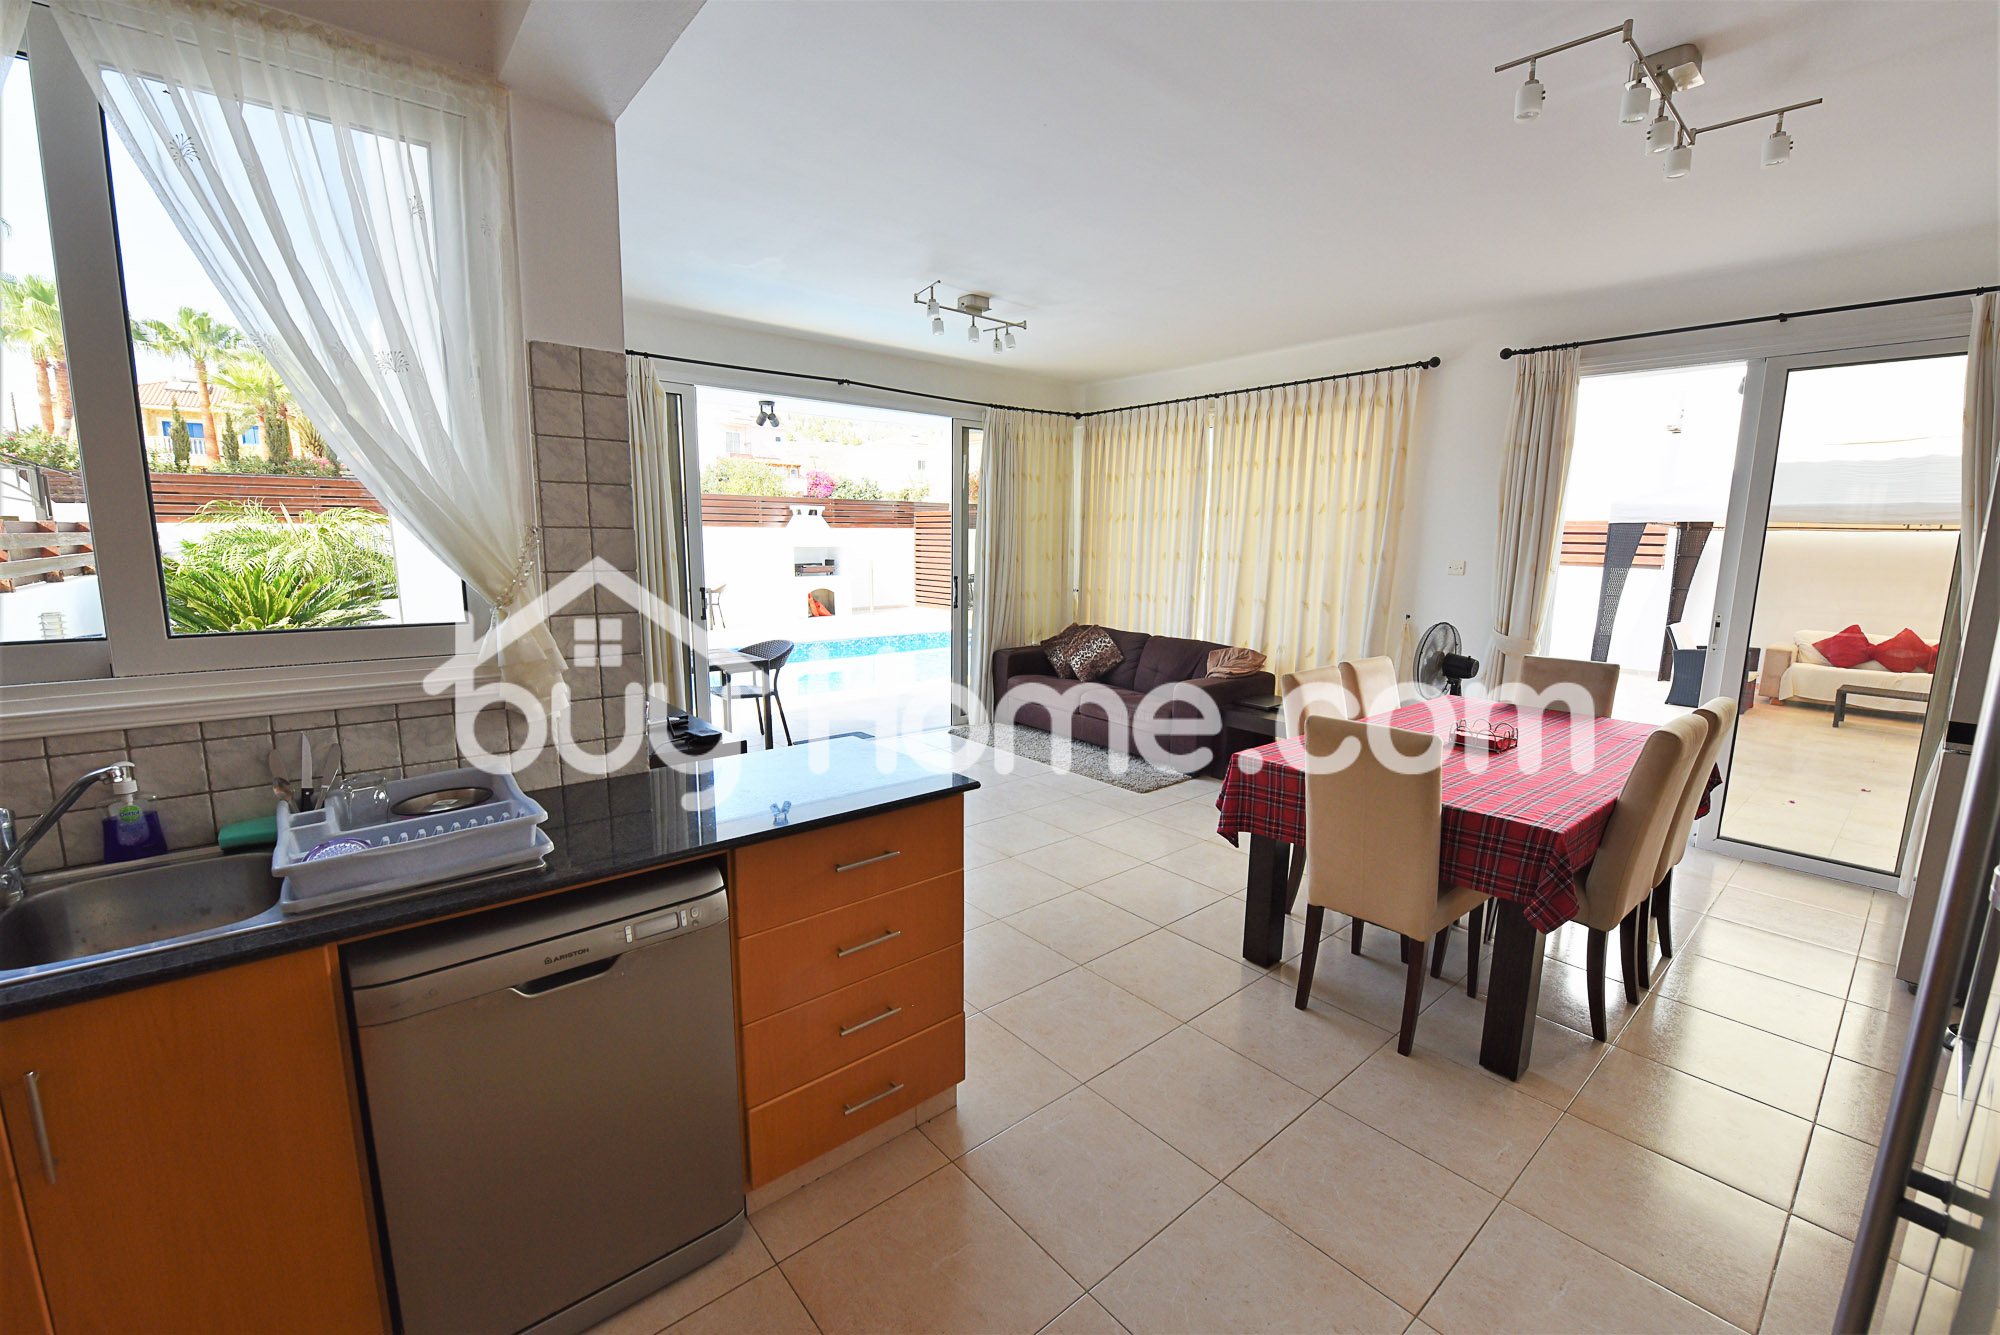 Lovely 3 Bedroom Home with Pool | BuyHome